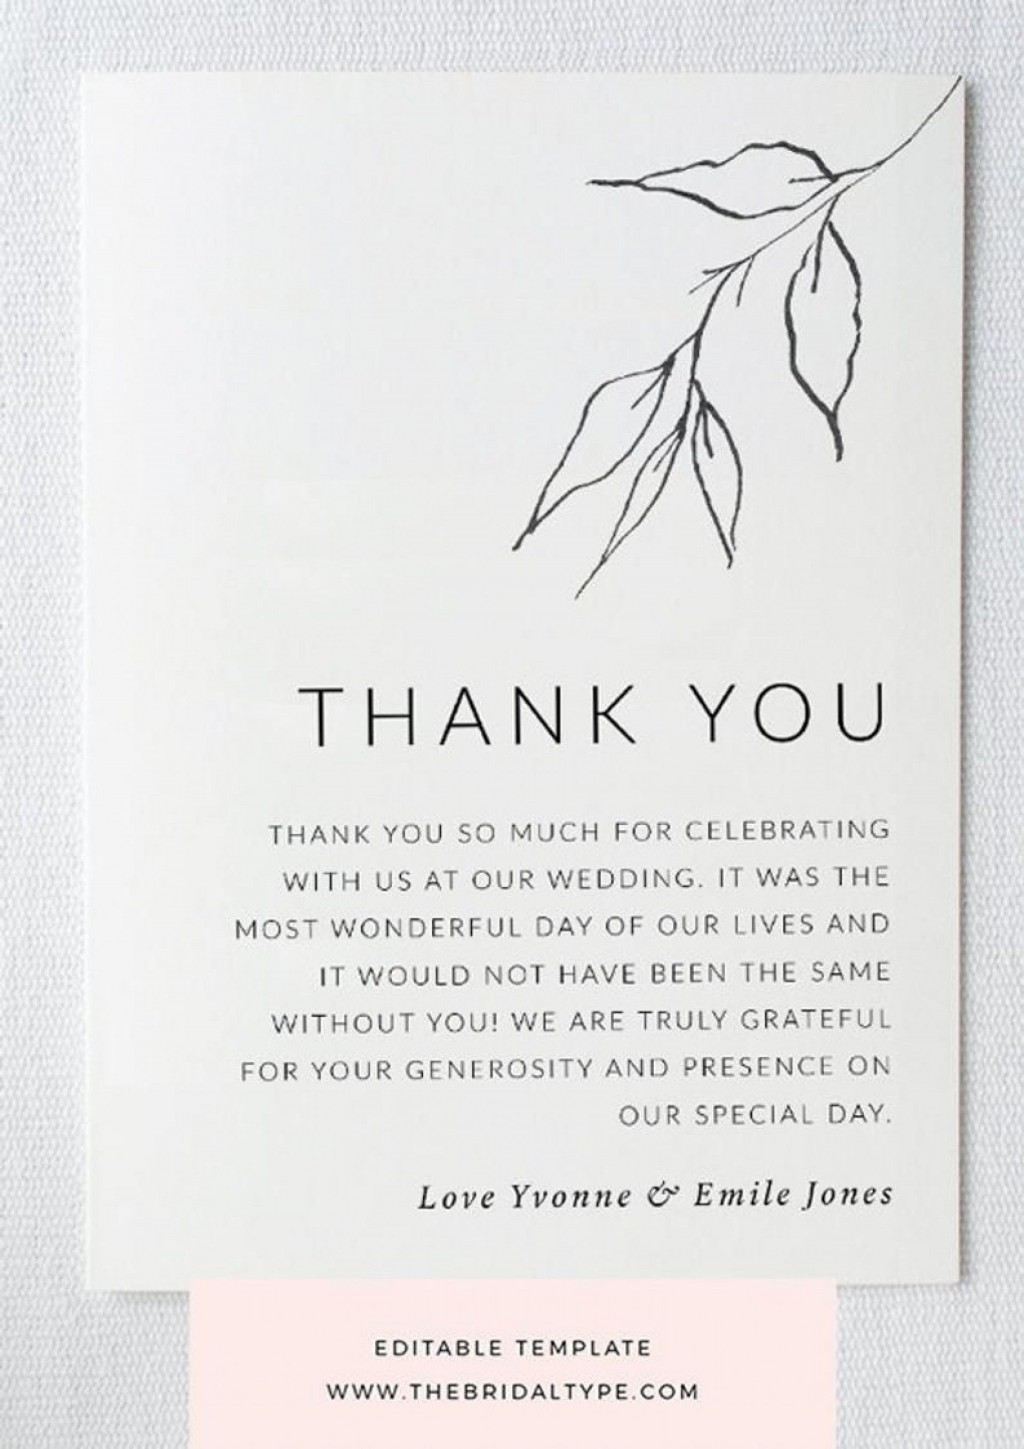 000 Amazing Free Thank You Card Template Sample  Google Doc For Funeral Microsoft WordLarge